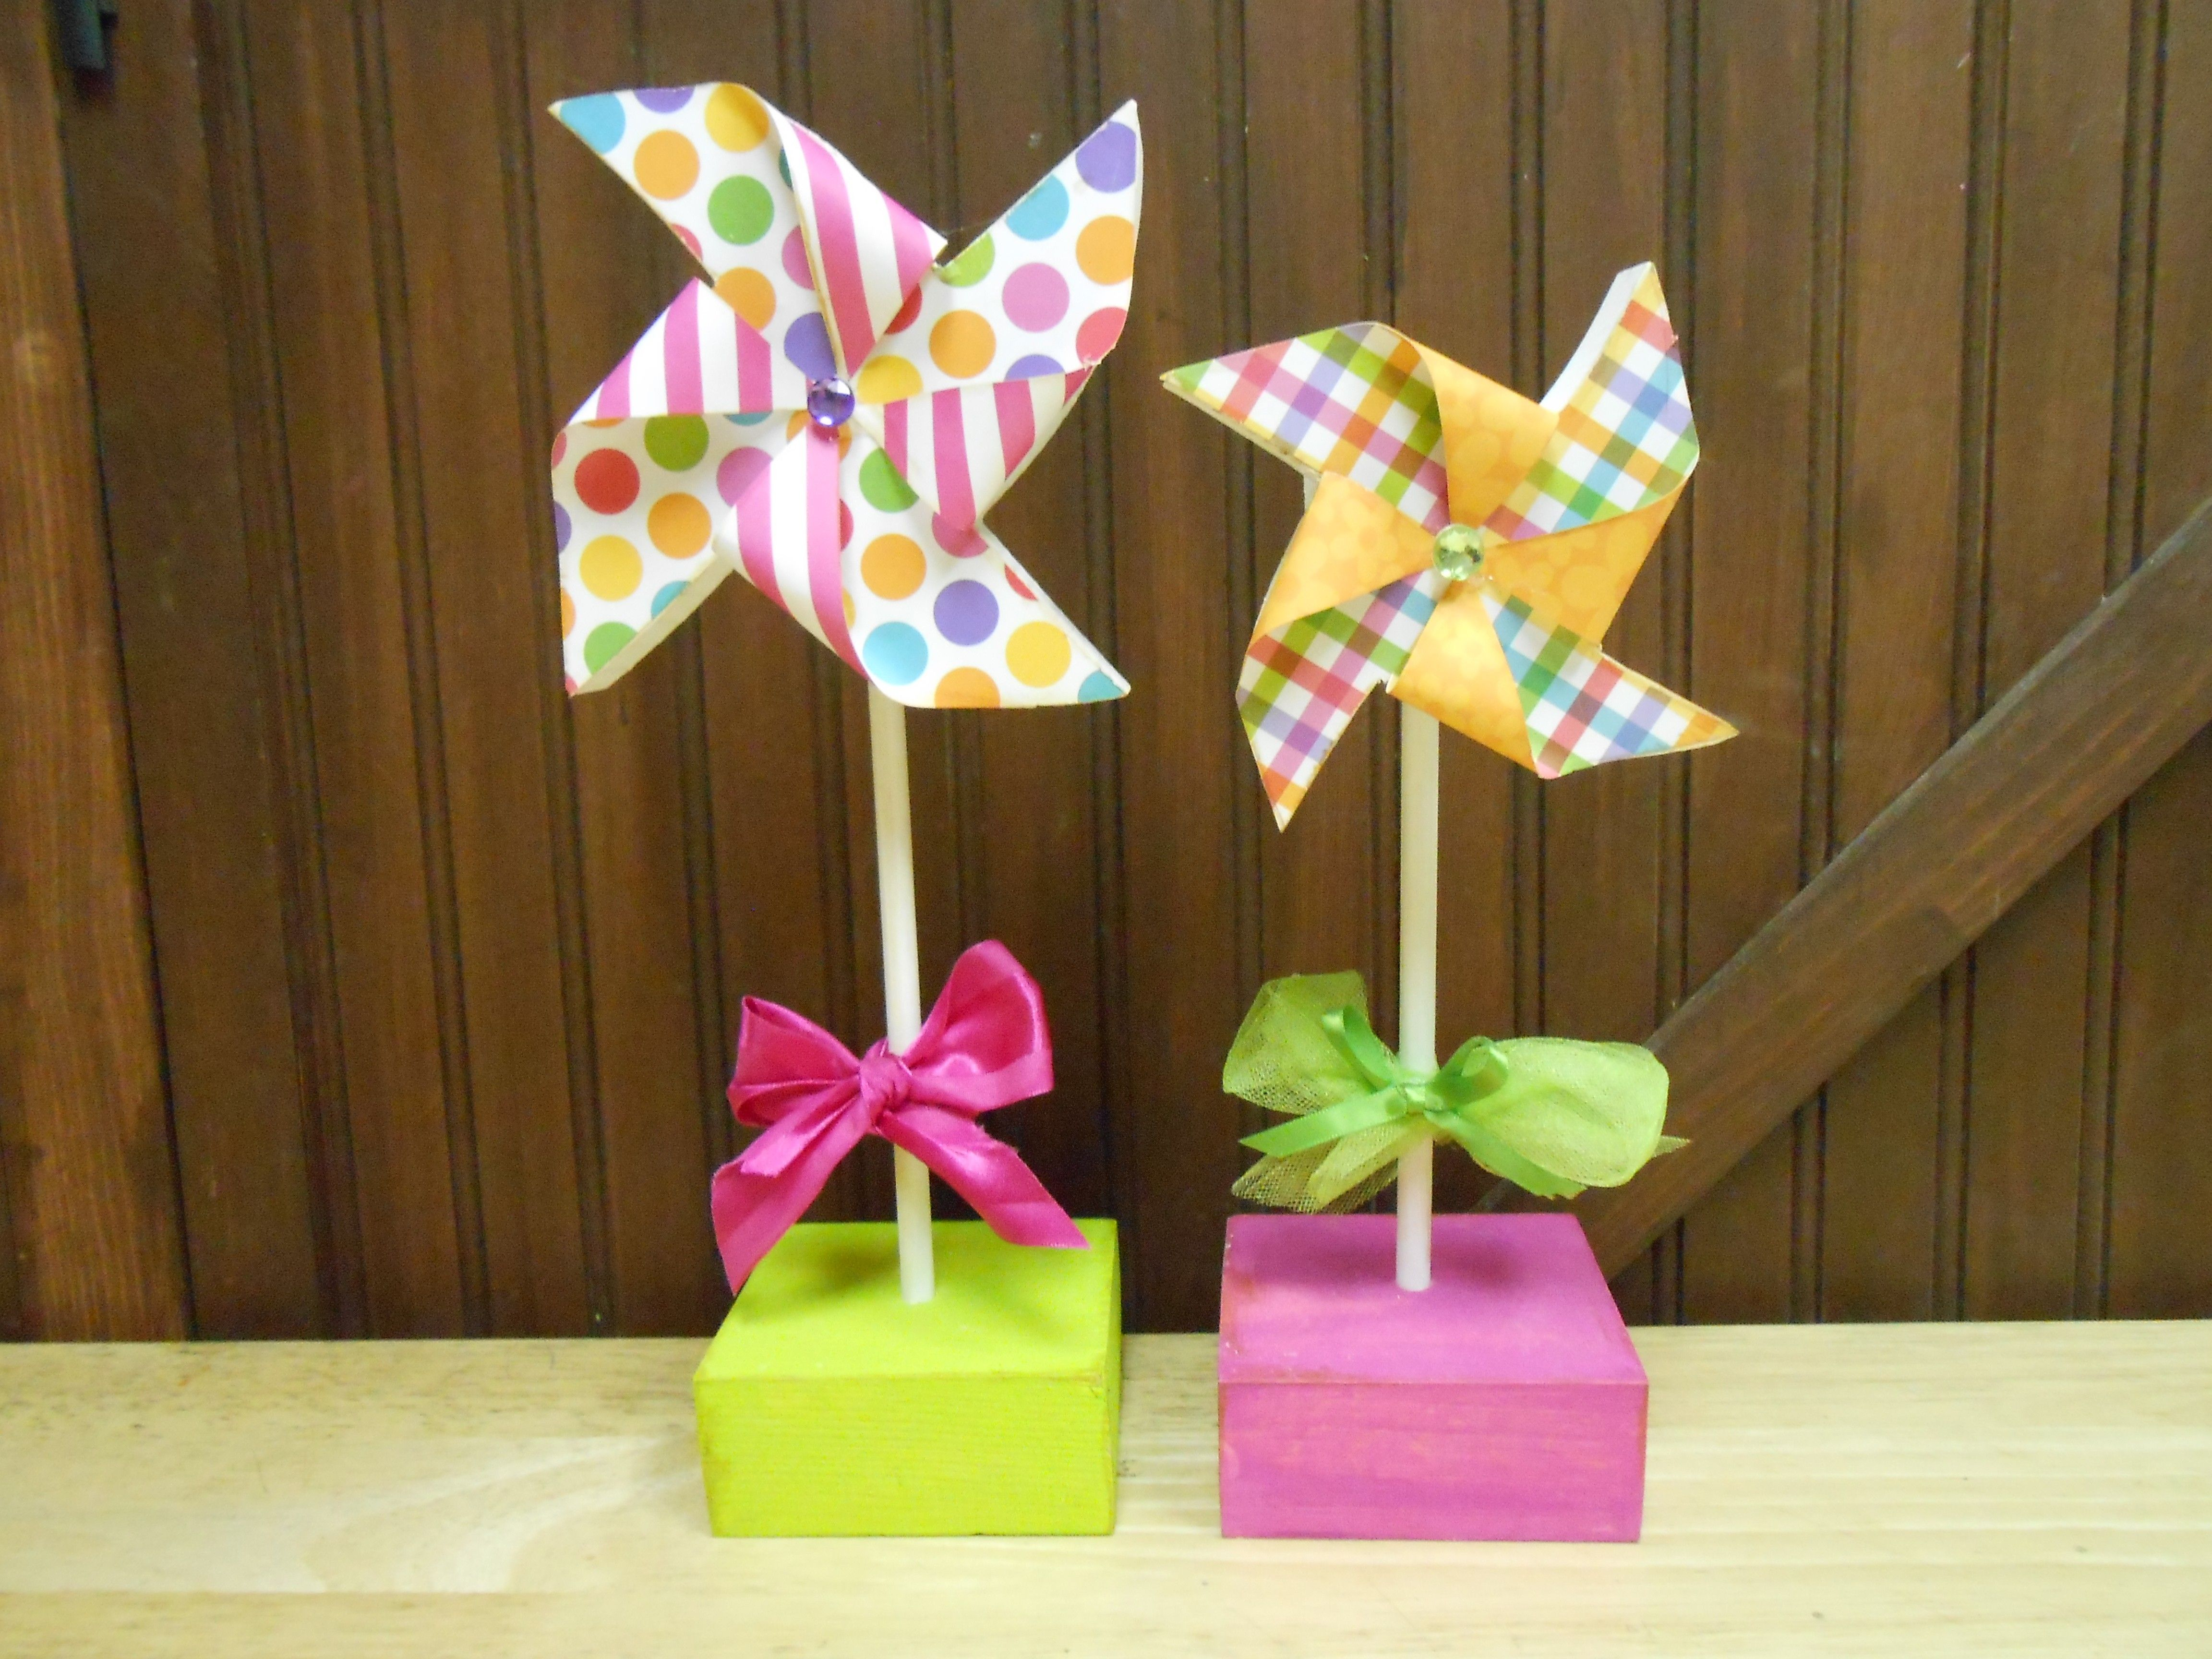 June summer wood crafts crafty wood cutouts deco spring june summer wood crafts crafty wood cutouts sciox Images